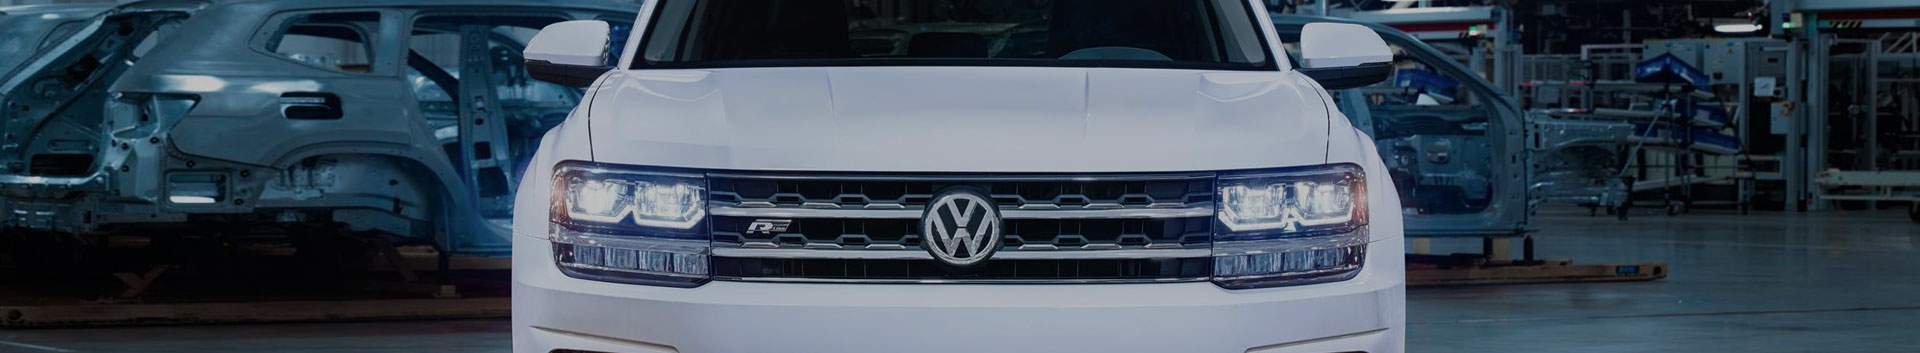 Volkswagen of Kamloops